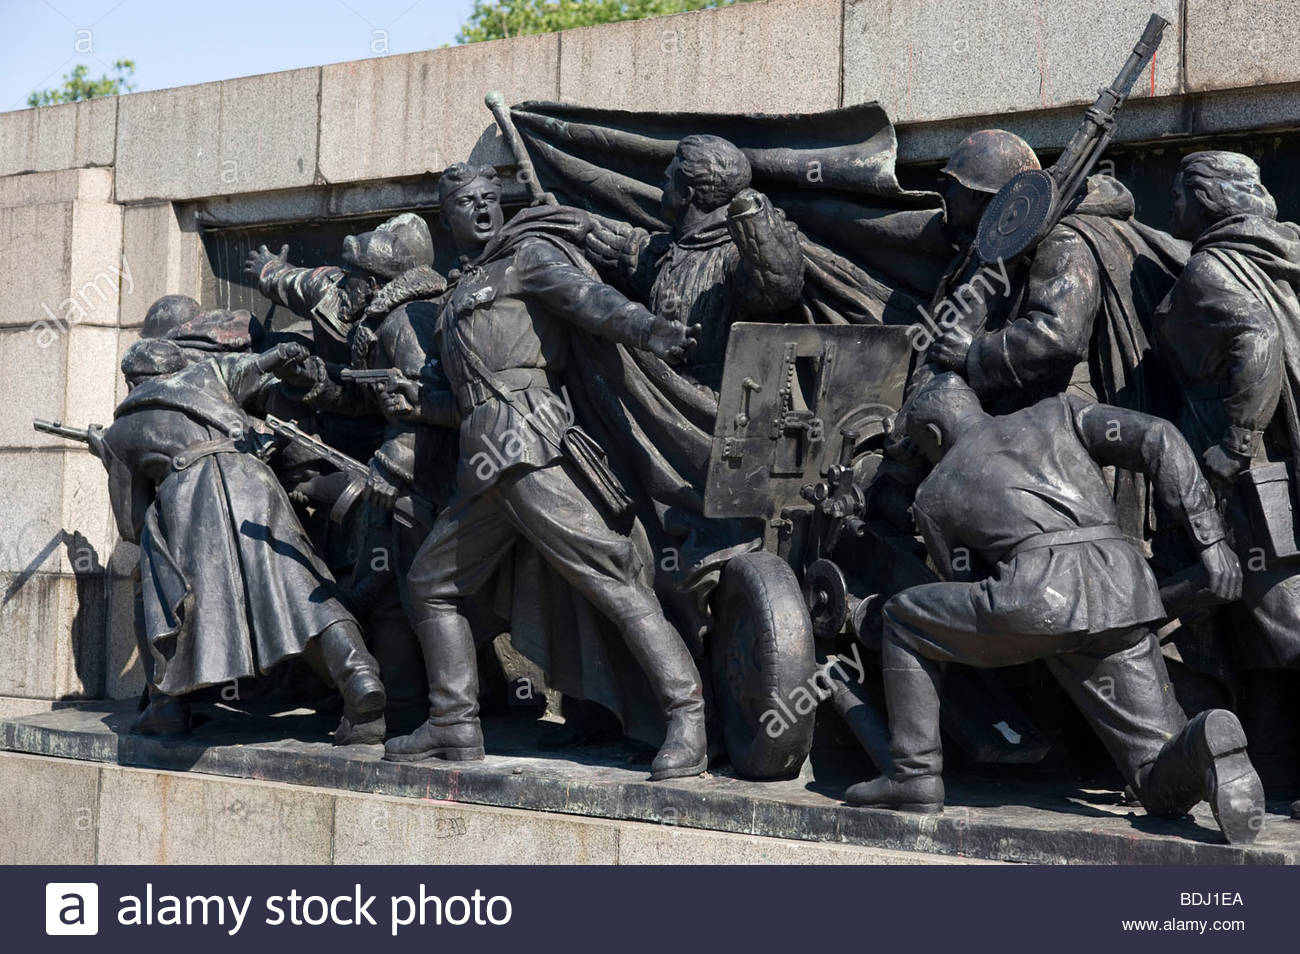 The communist-era Soviet Army memorial, Sofia. - Stock Image